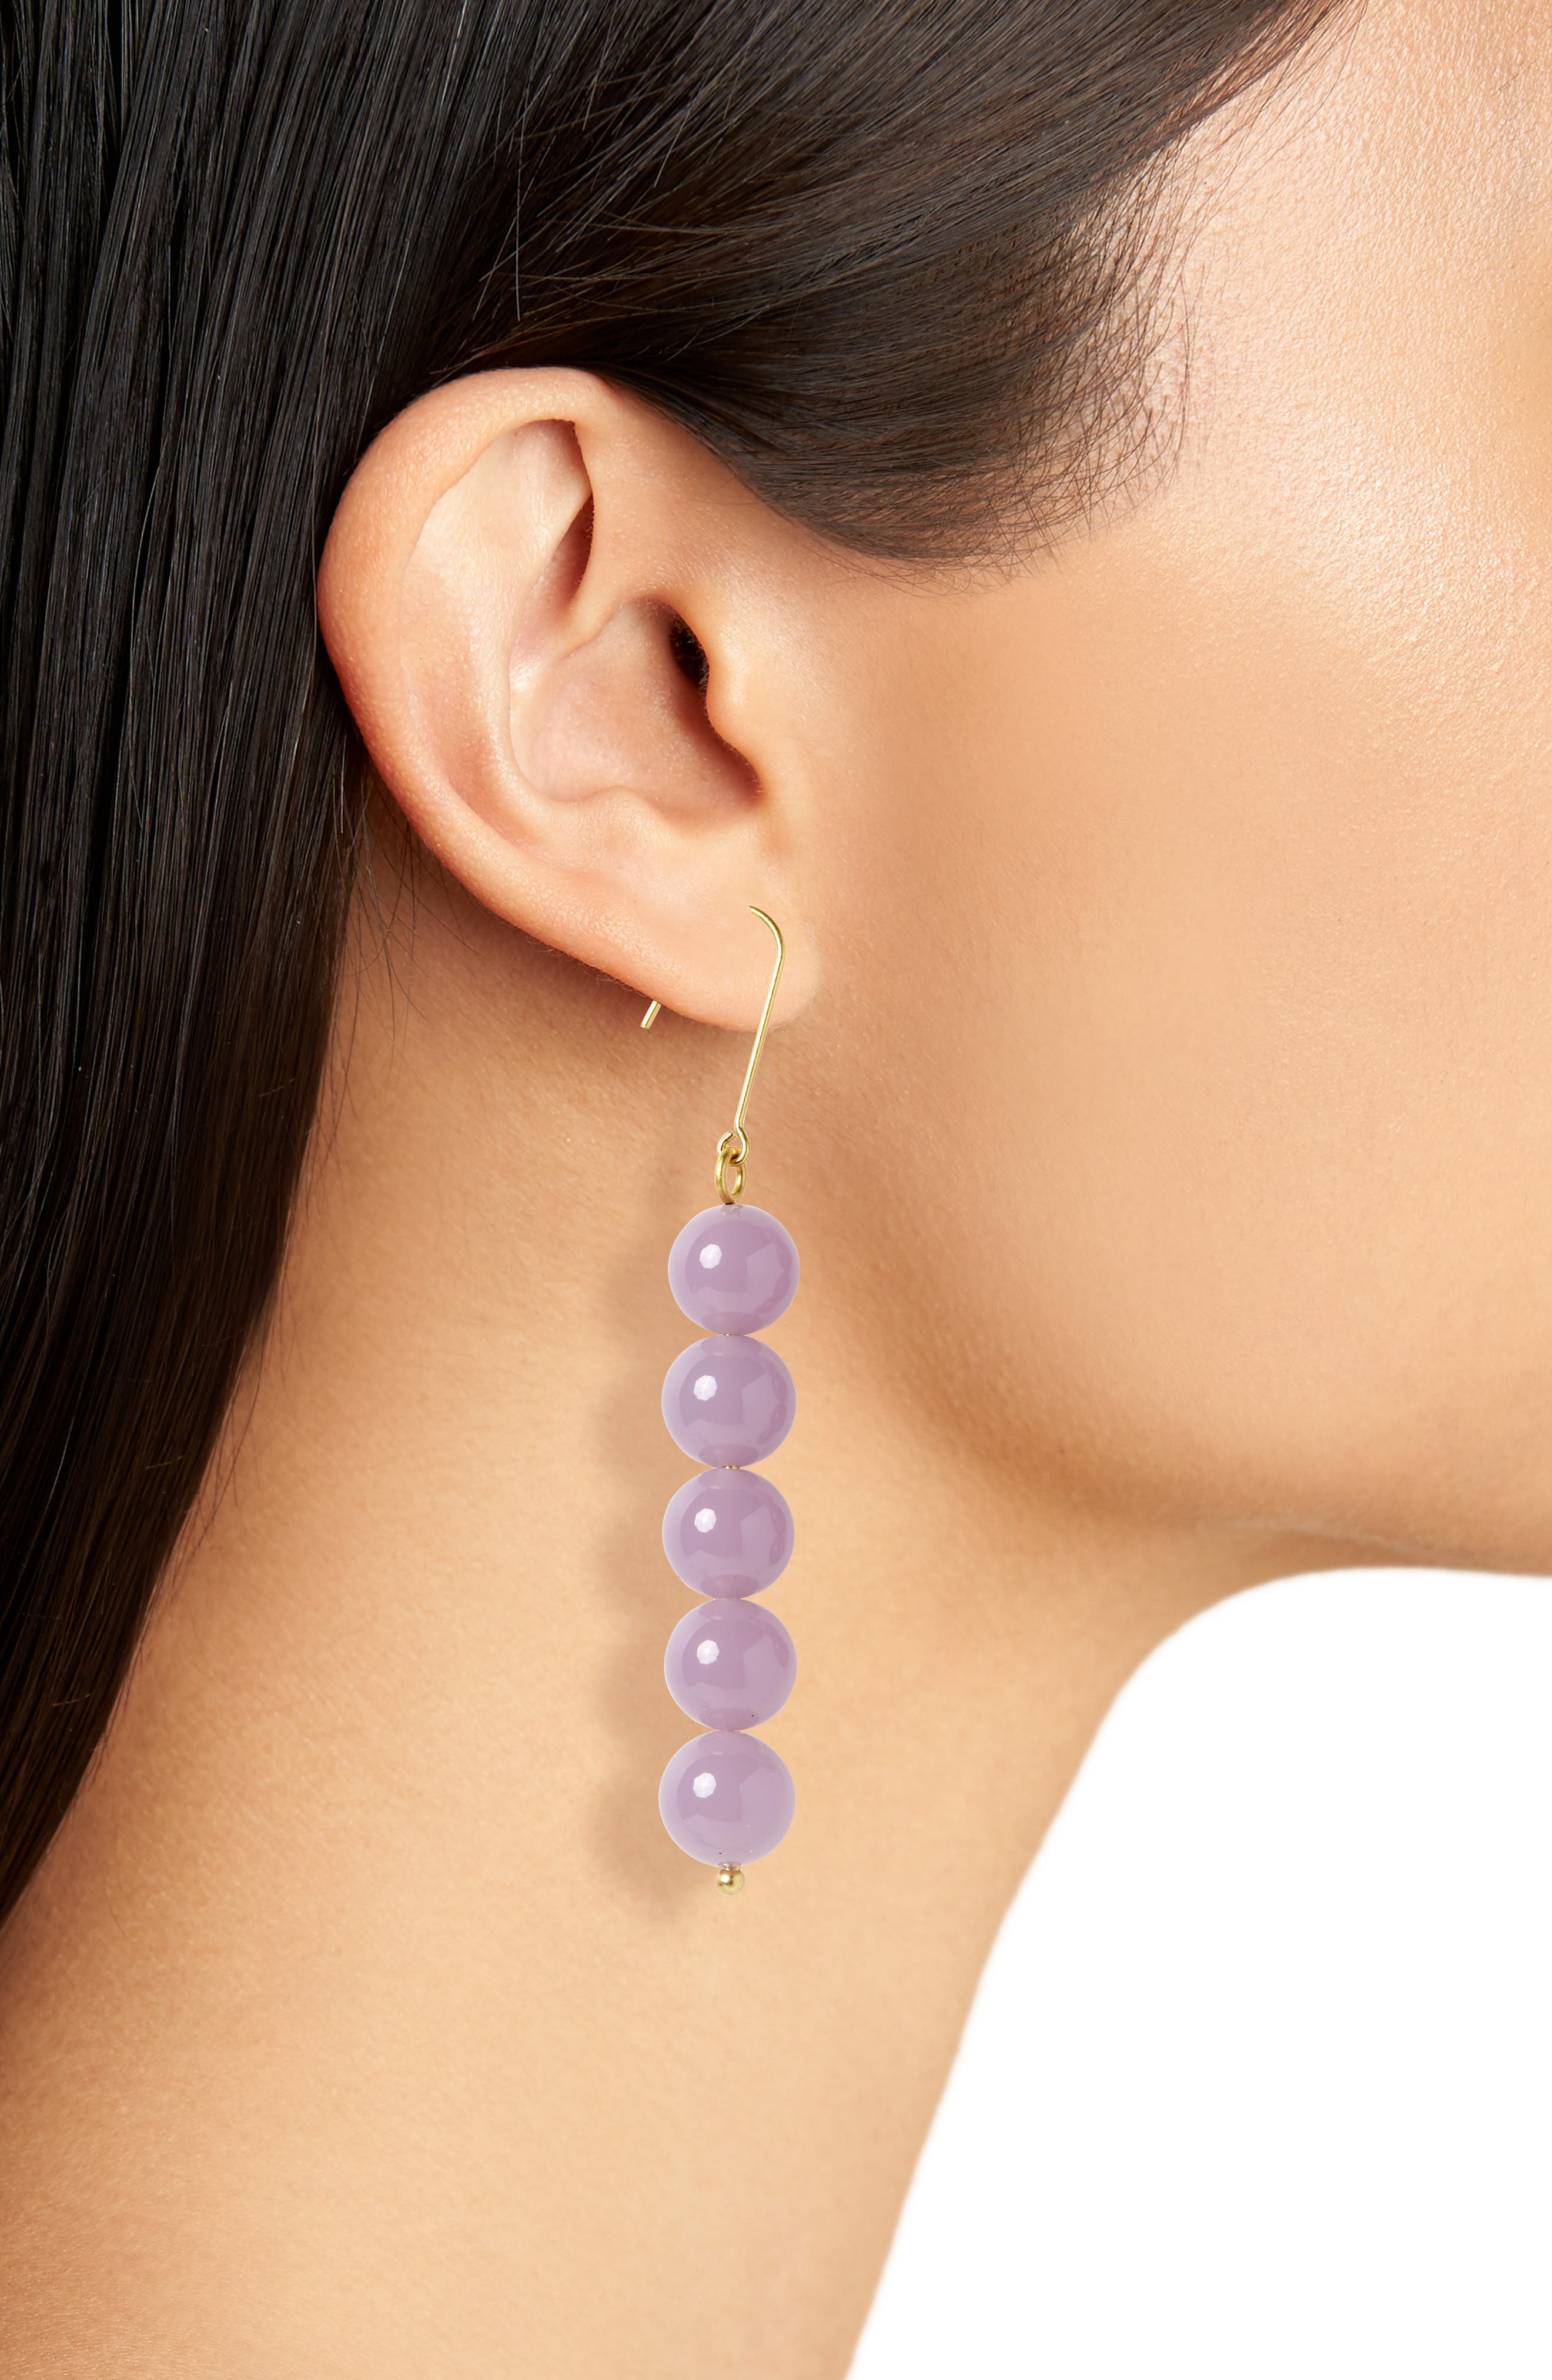 Ball Drop Earrings,                             Alternate thumbnail 2, color,                             WISTERIA DOVE